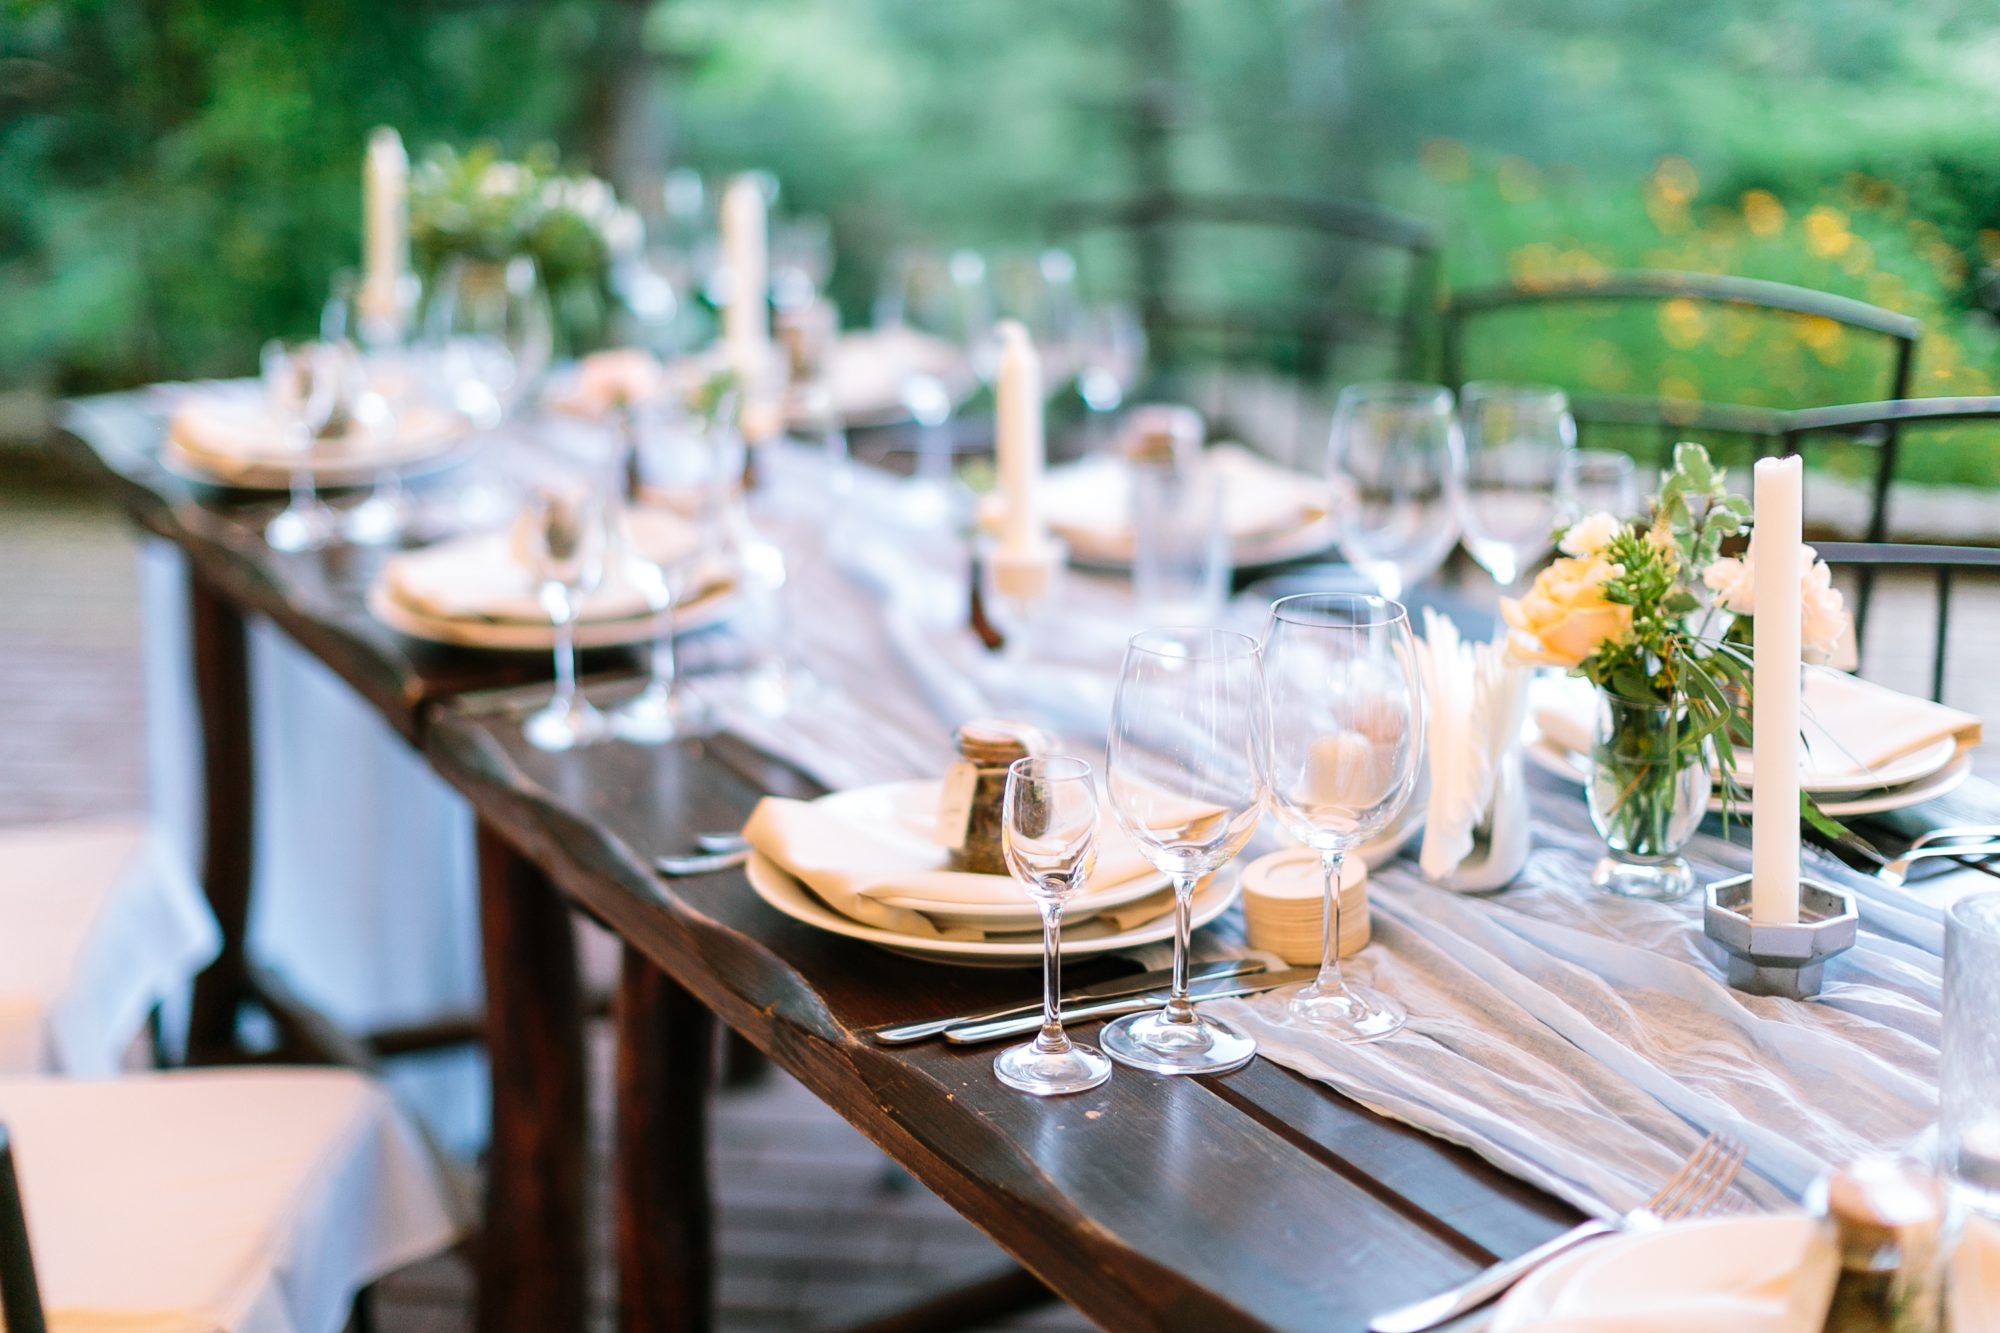 Wedding Menu Ideas for Every Type of Reception | Real Simple